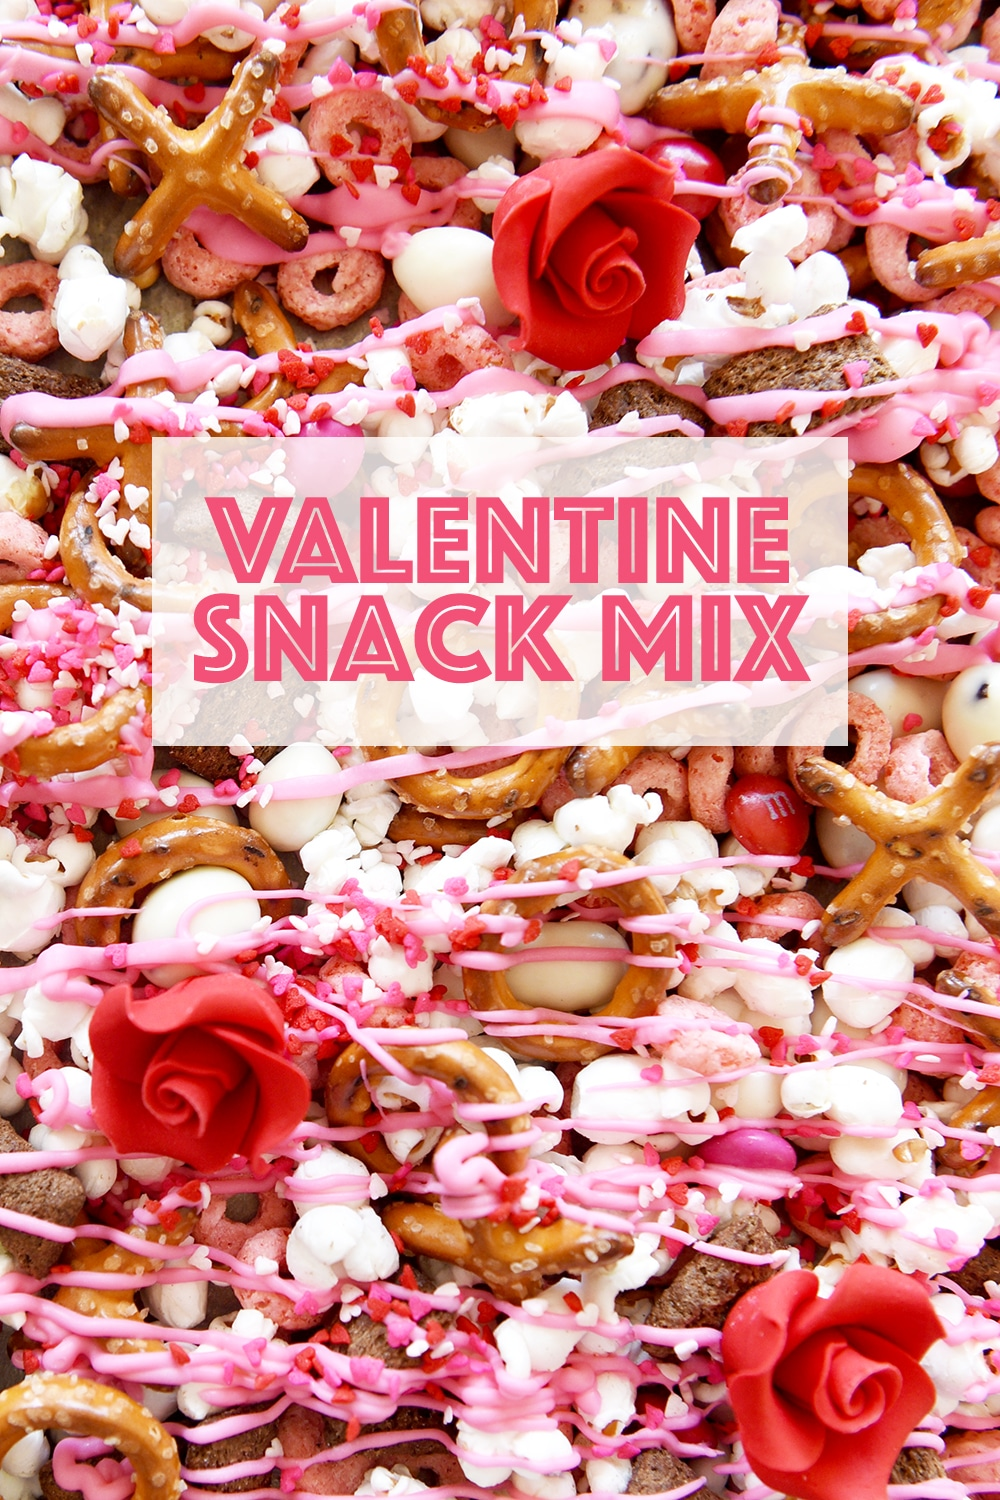 Valentine Snack Mix has pink candy, xoxo pretzels and red roses!  A super cute way to celebrate the holiday for parties and to hand out to classmates.  FREE PRINTABLE Valentine treat bag label when you click the link...